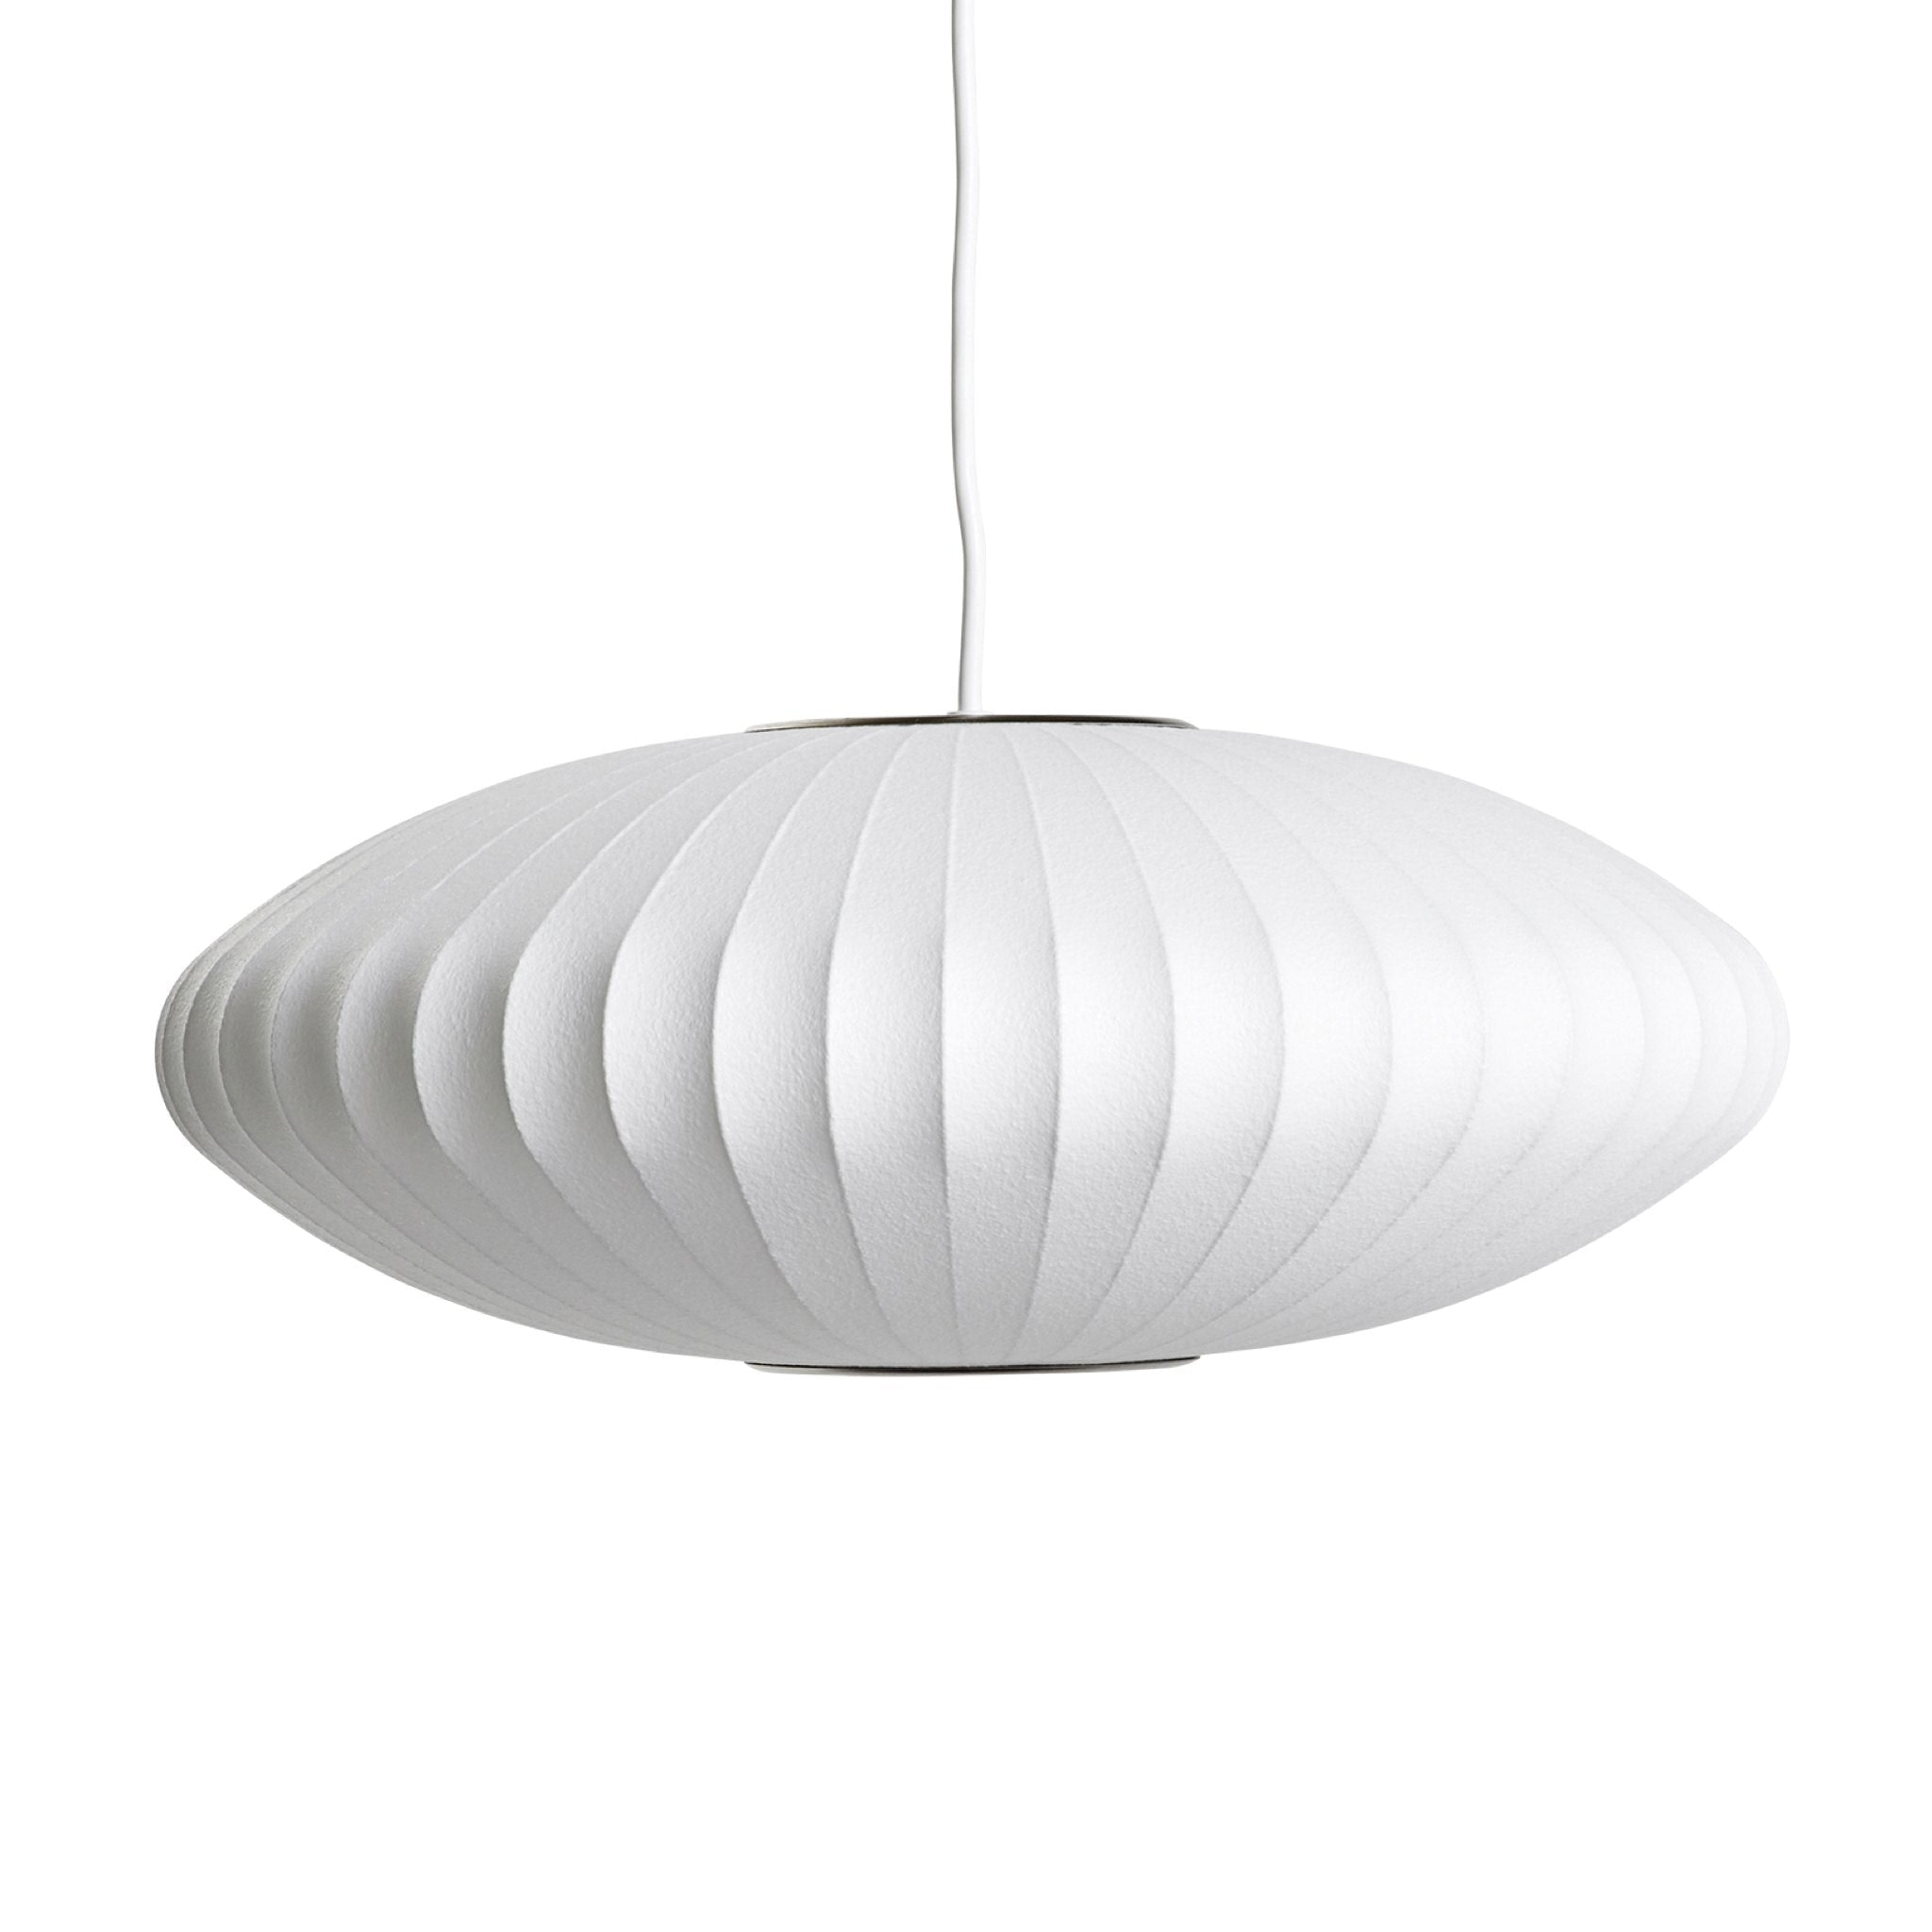 Saucer Bubble Light by Herman Miller